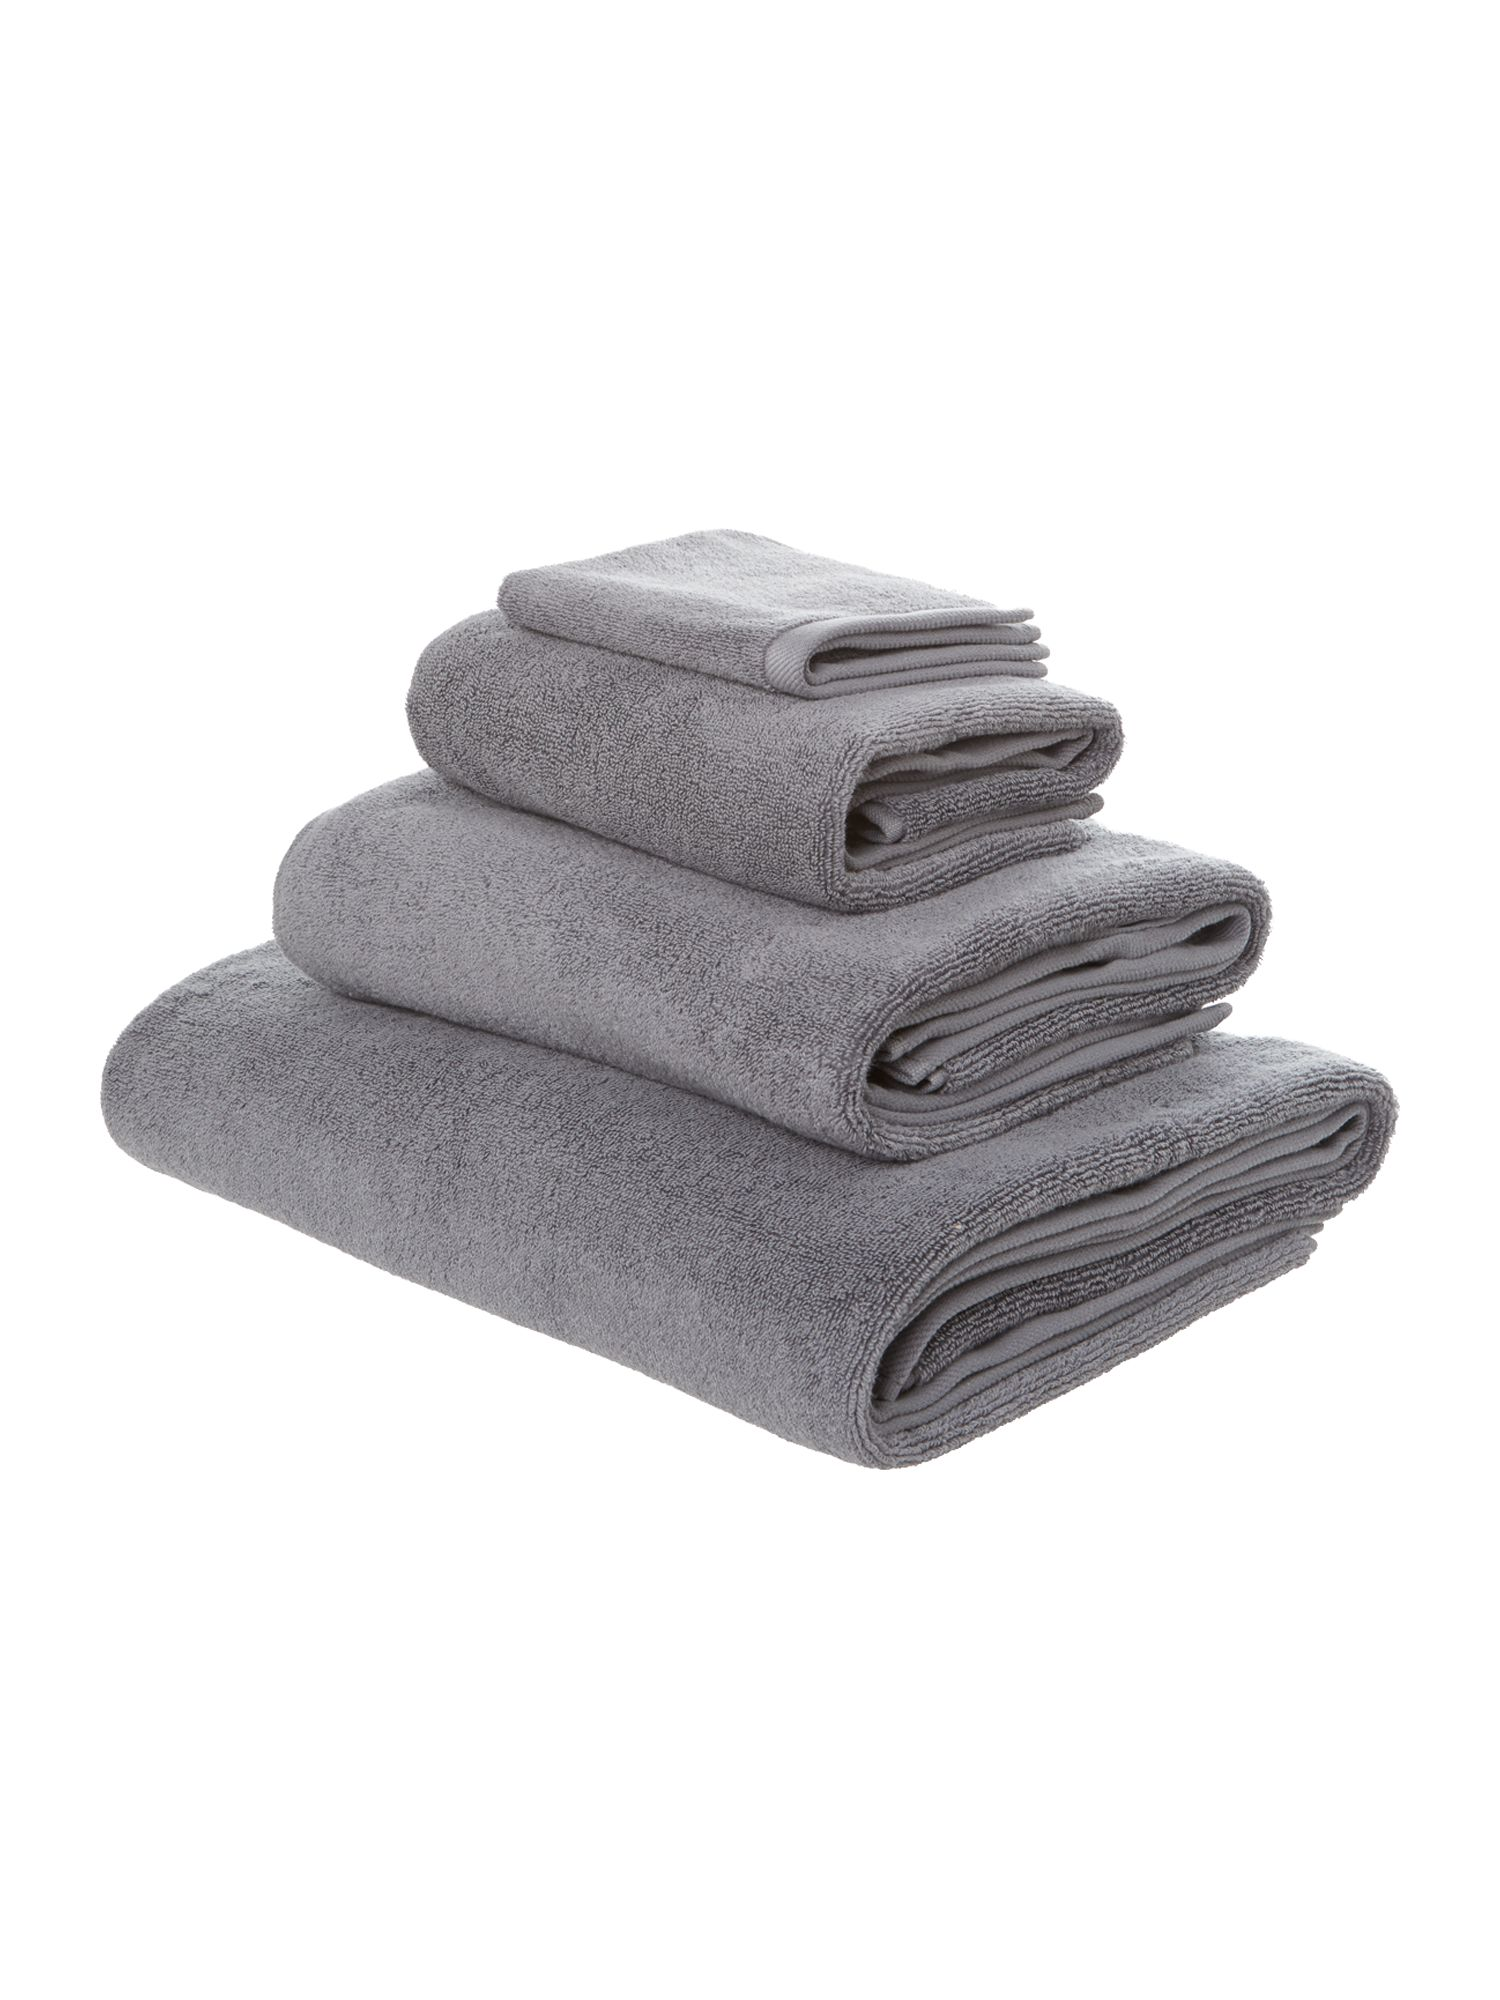 Simply soft grey towels